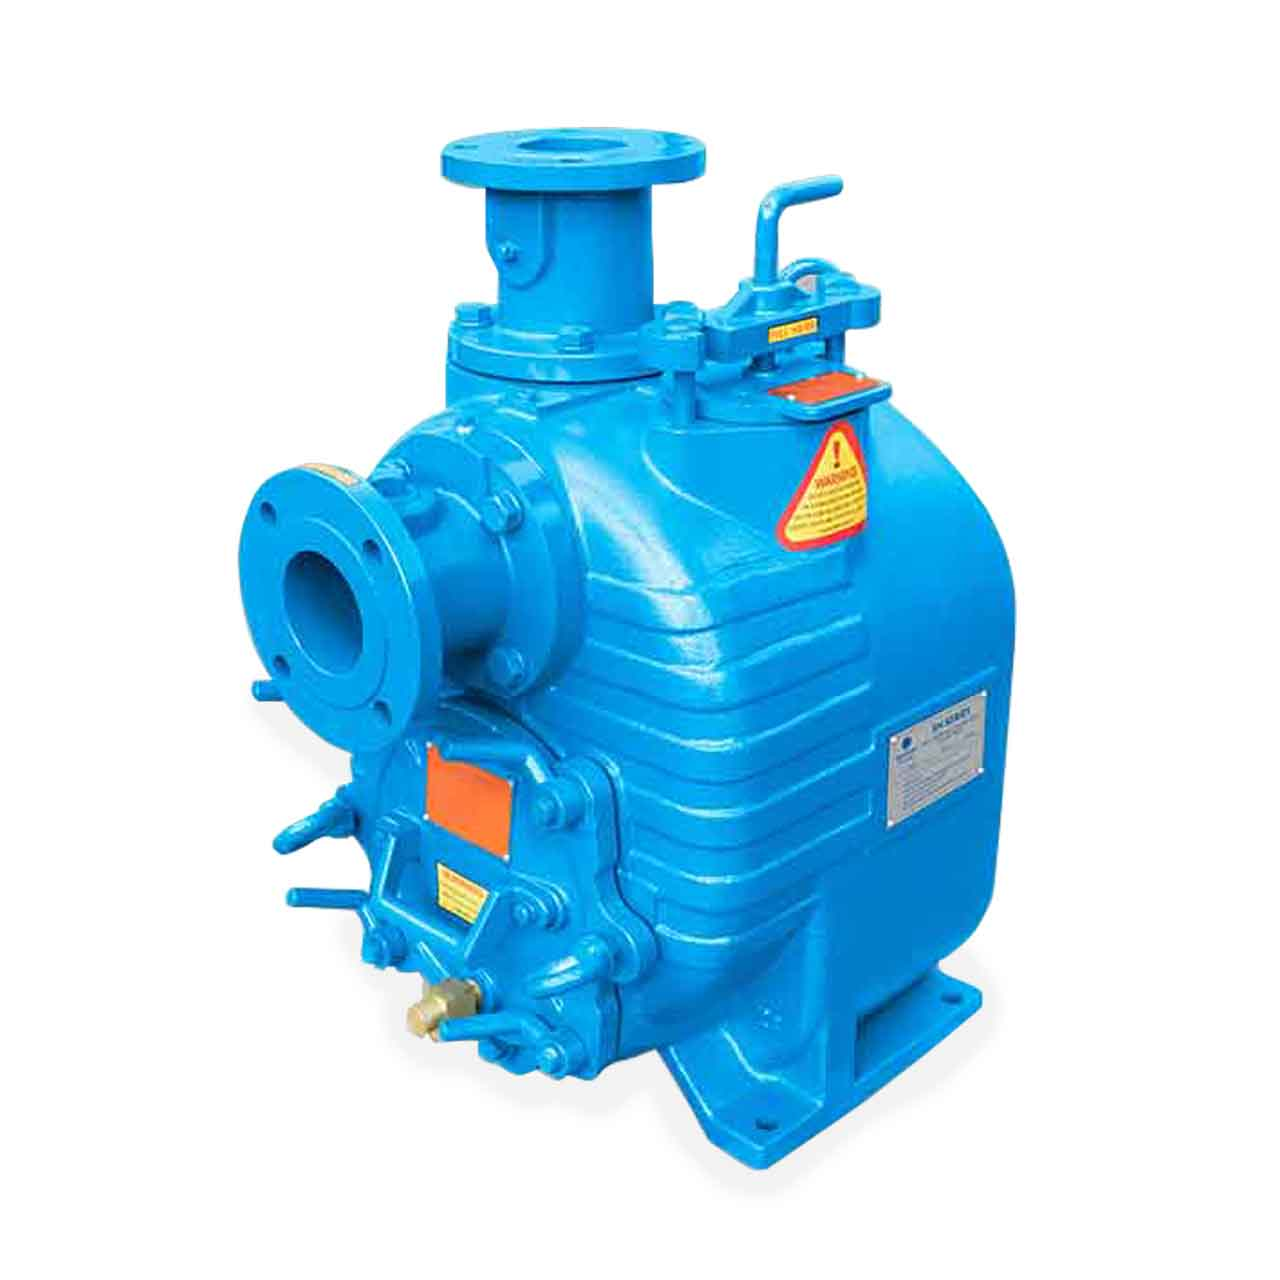 All Self-Priming Trash Pumps